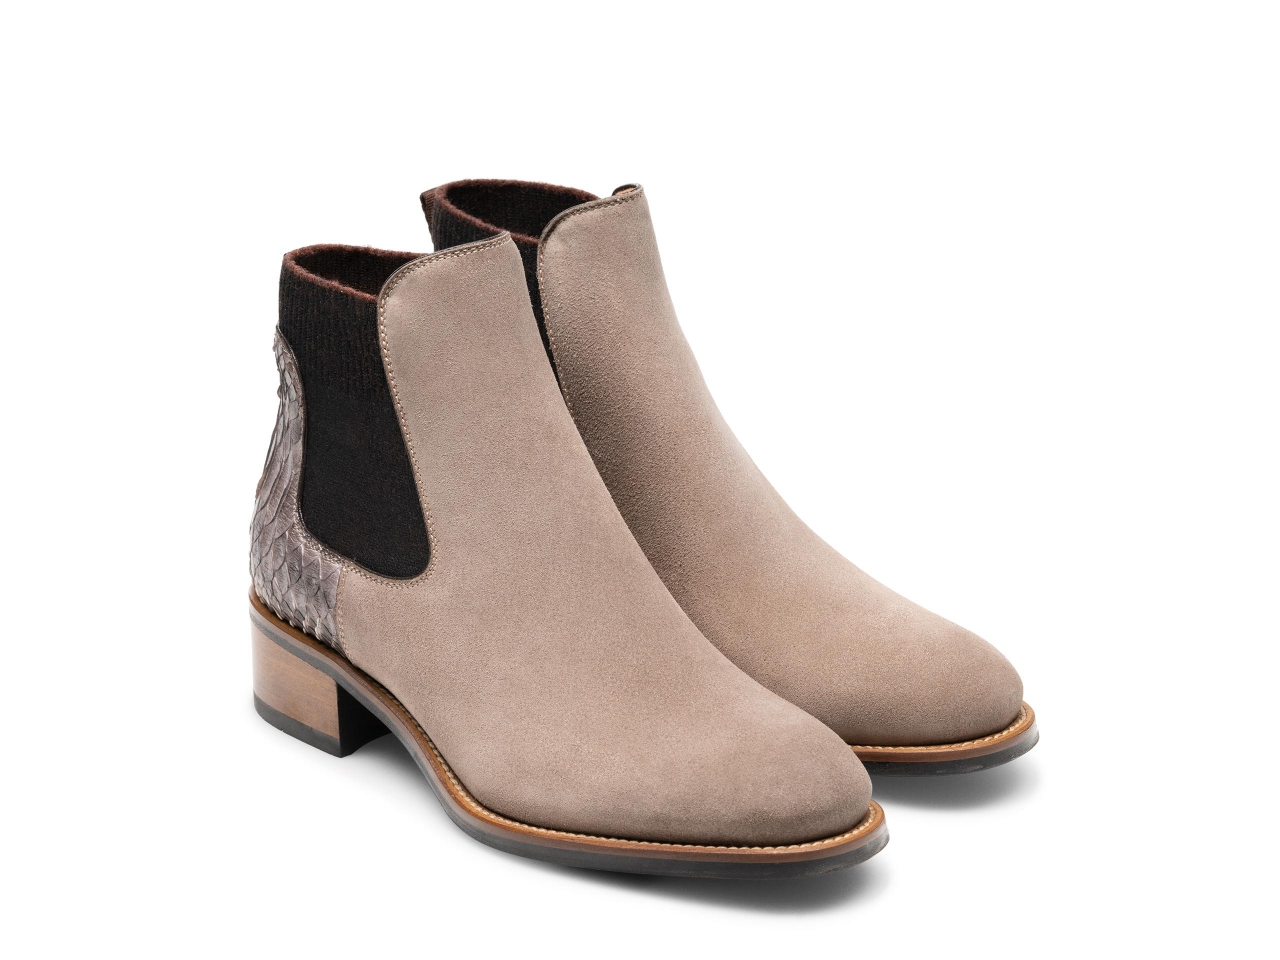 Pair of the Jayde Taupe Suede